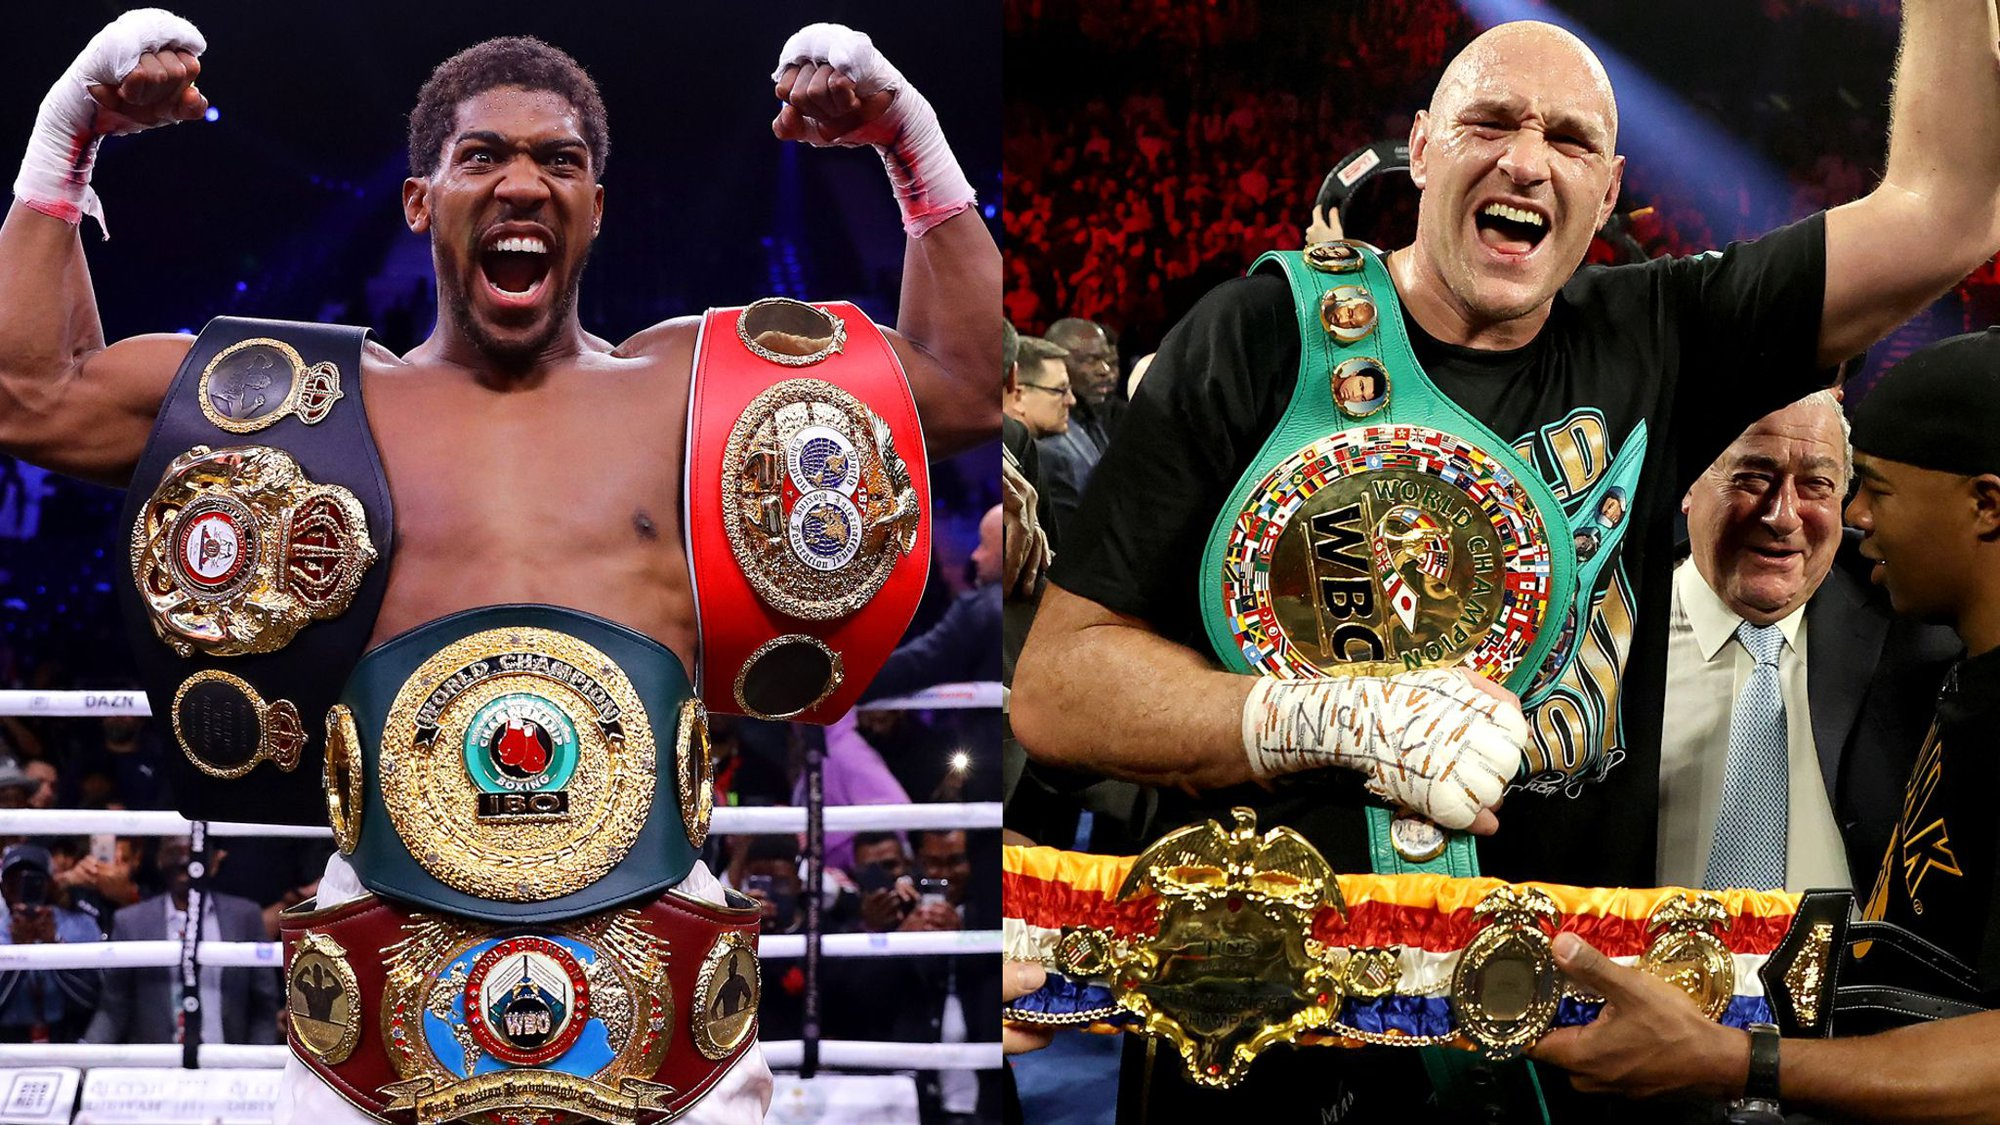 Tyson Fury vs. Anthony Joshua: Gypsy King Early Favorite to Unify Titles